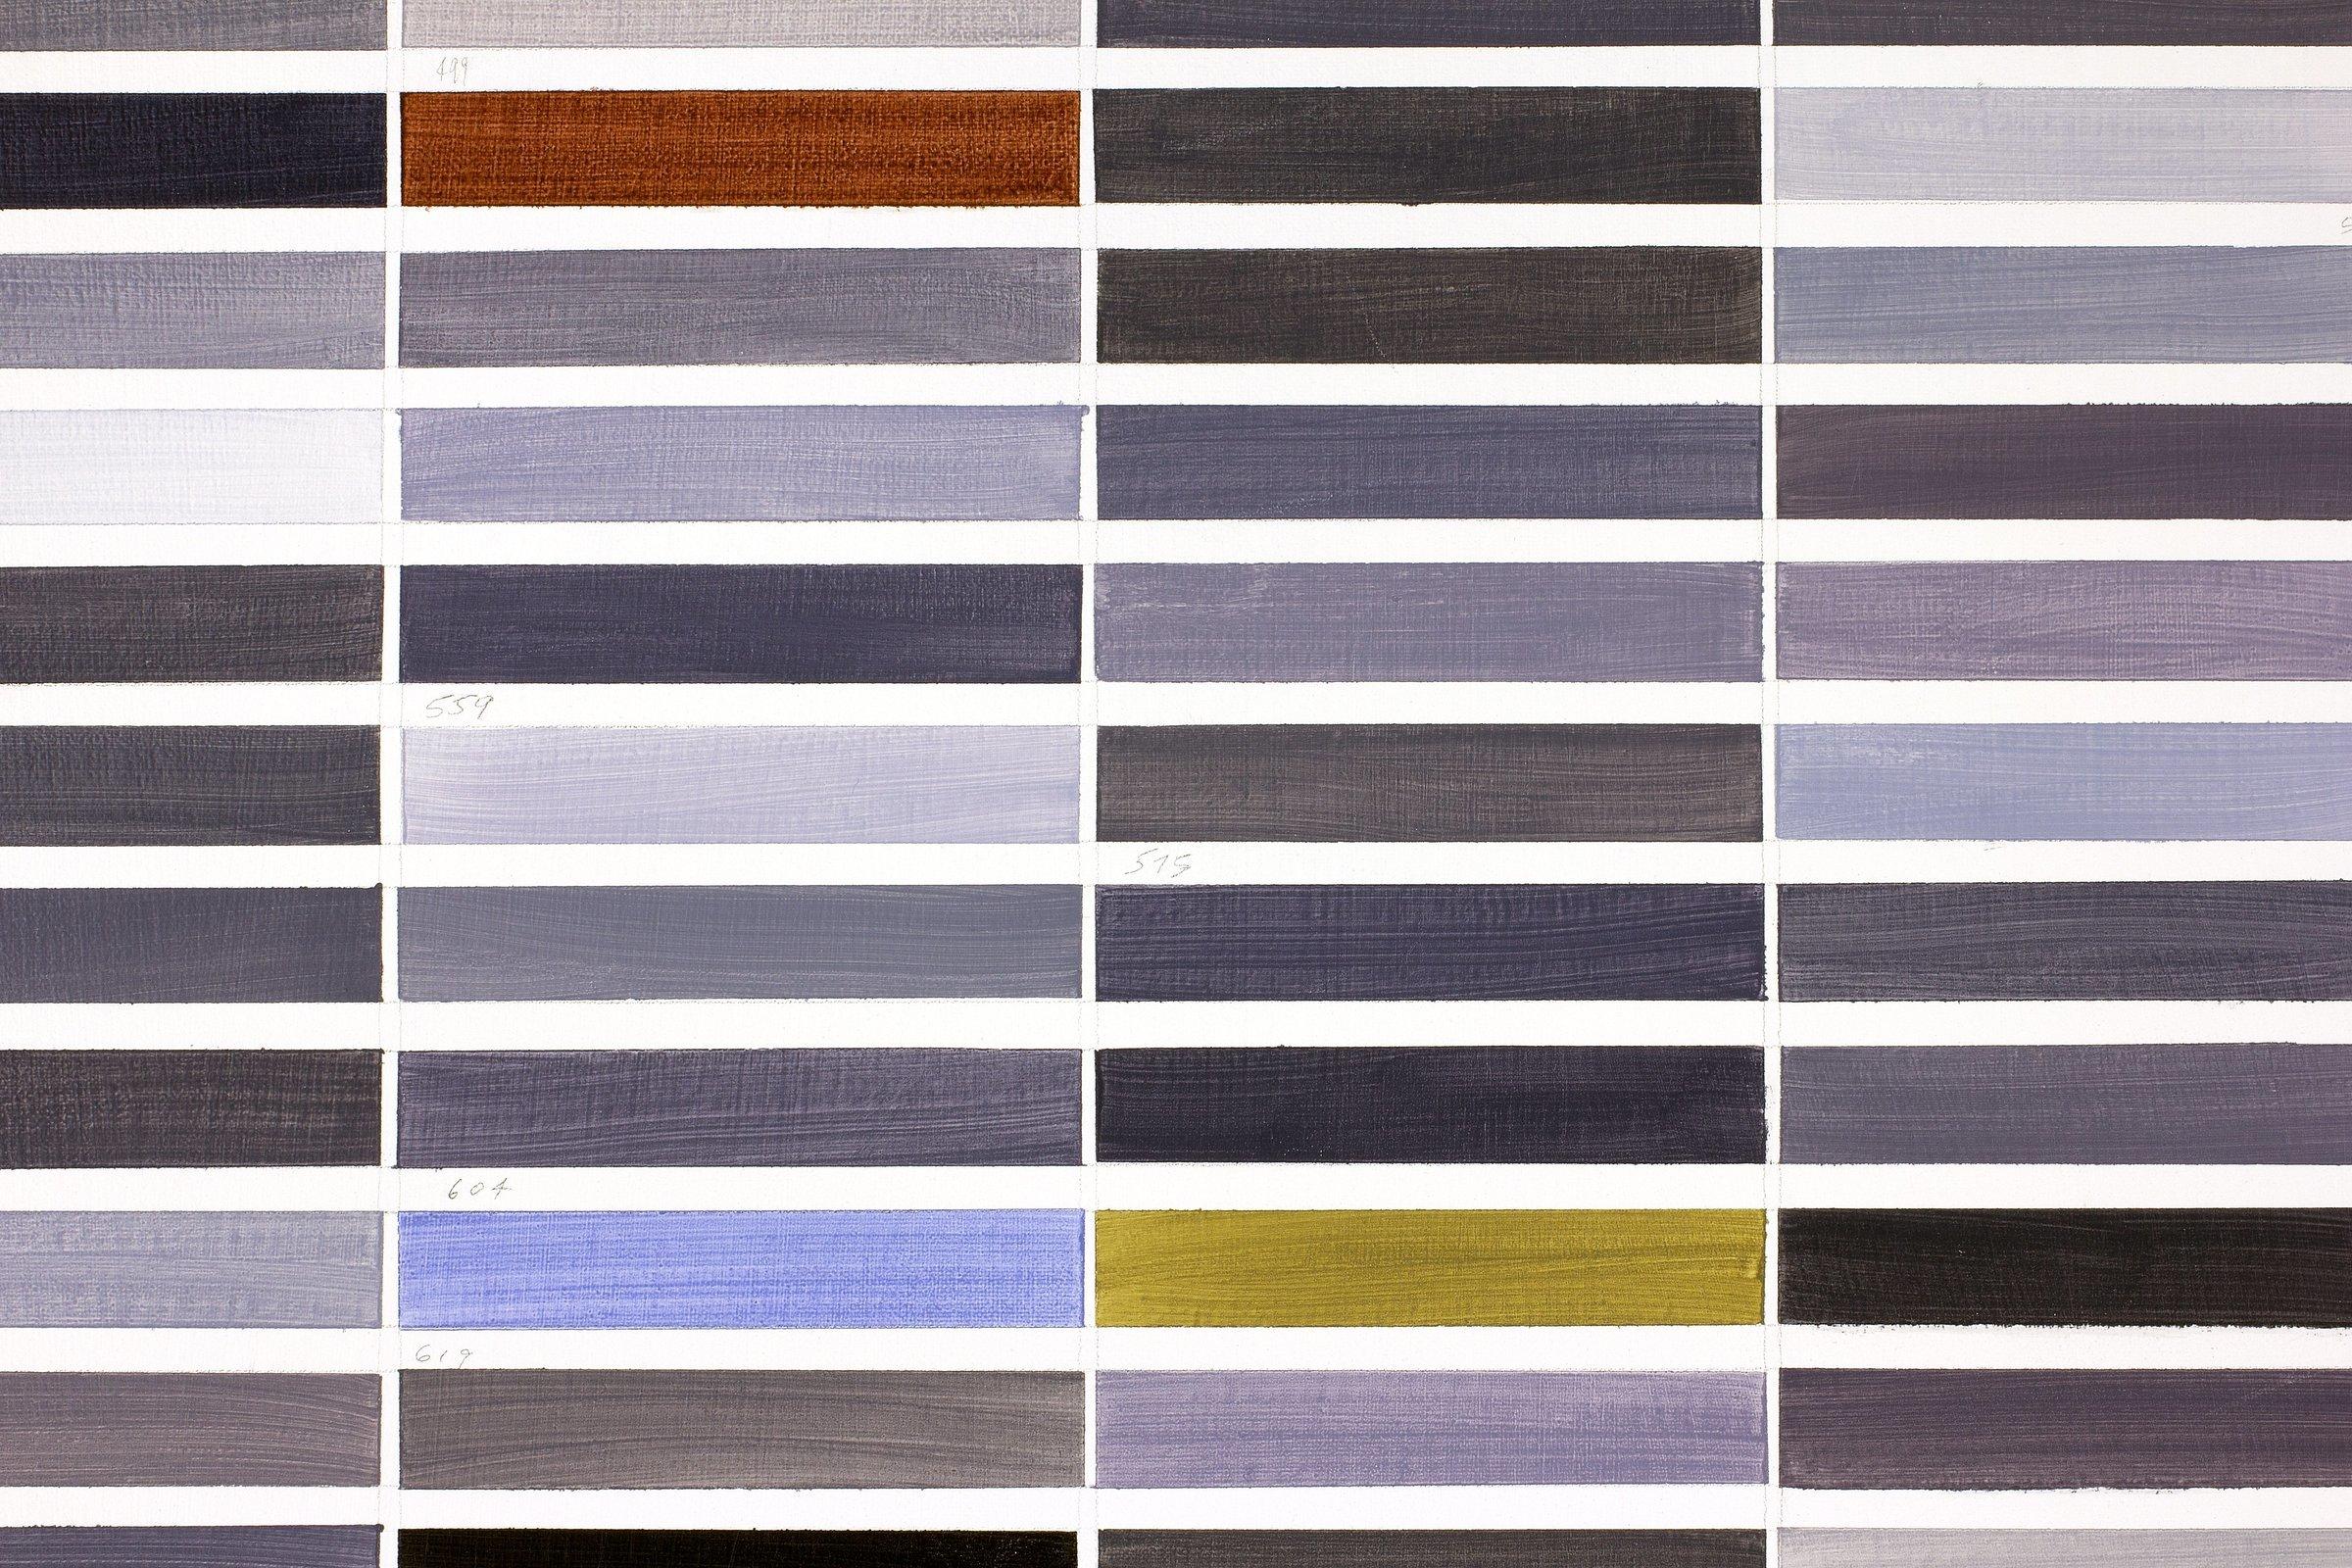 Richard Garrison, Parking Space Color Scheme (January 2014 - May 2015), 2016-17